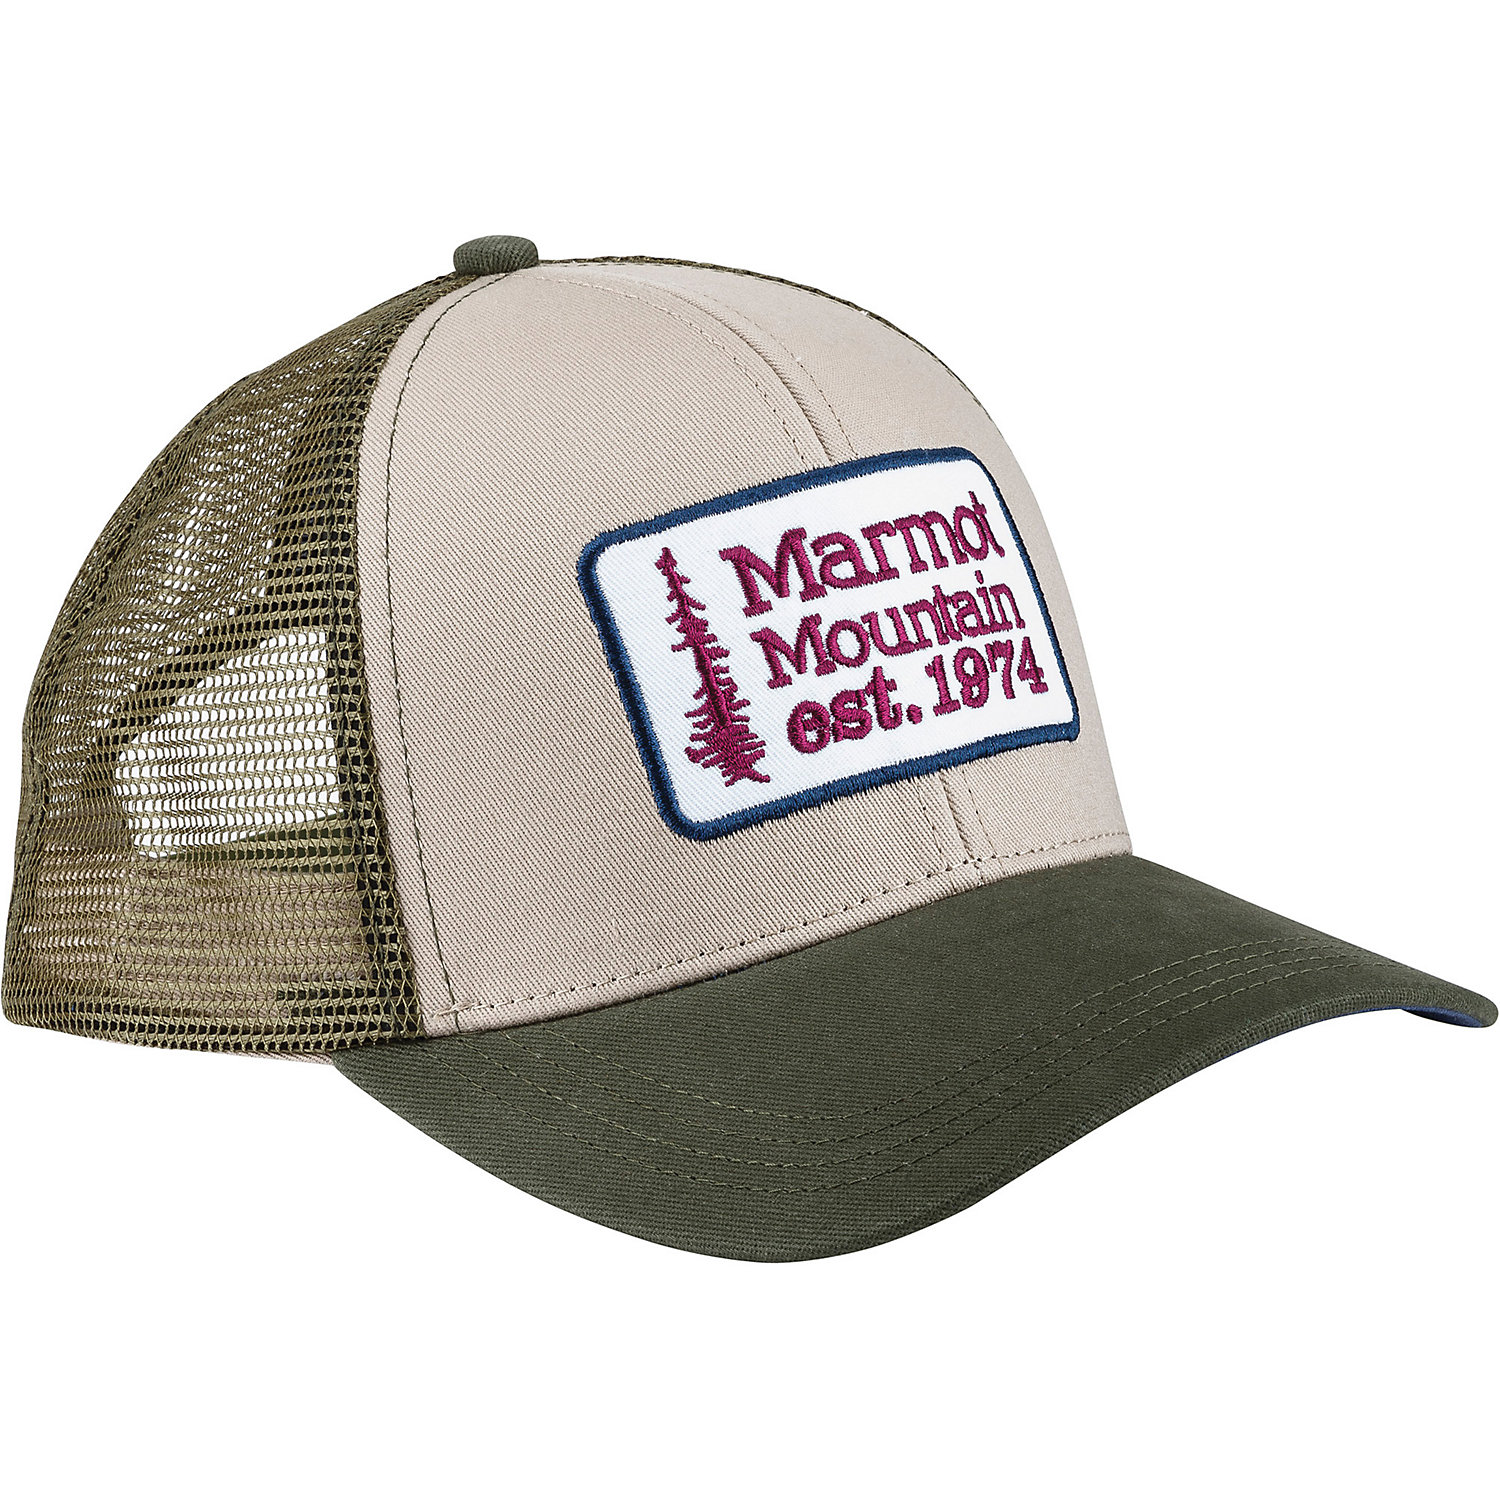 0fd61e3b600 Marmot Retro Trucker Hat. Double tap to zoom